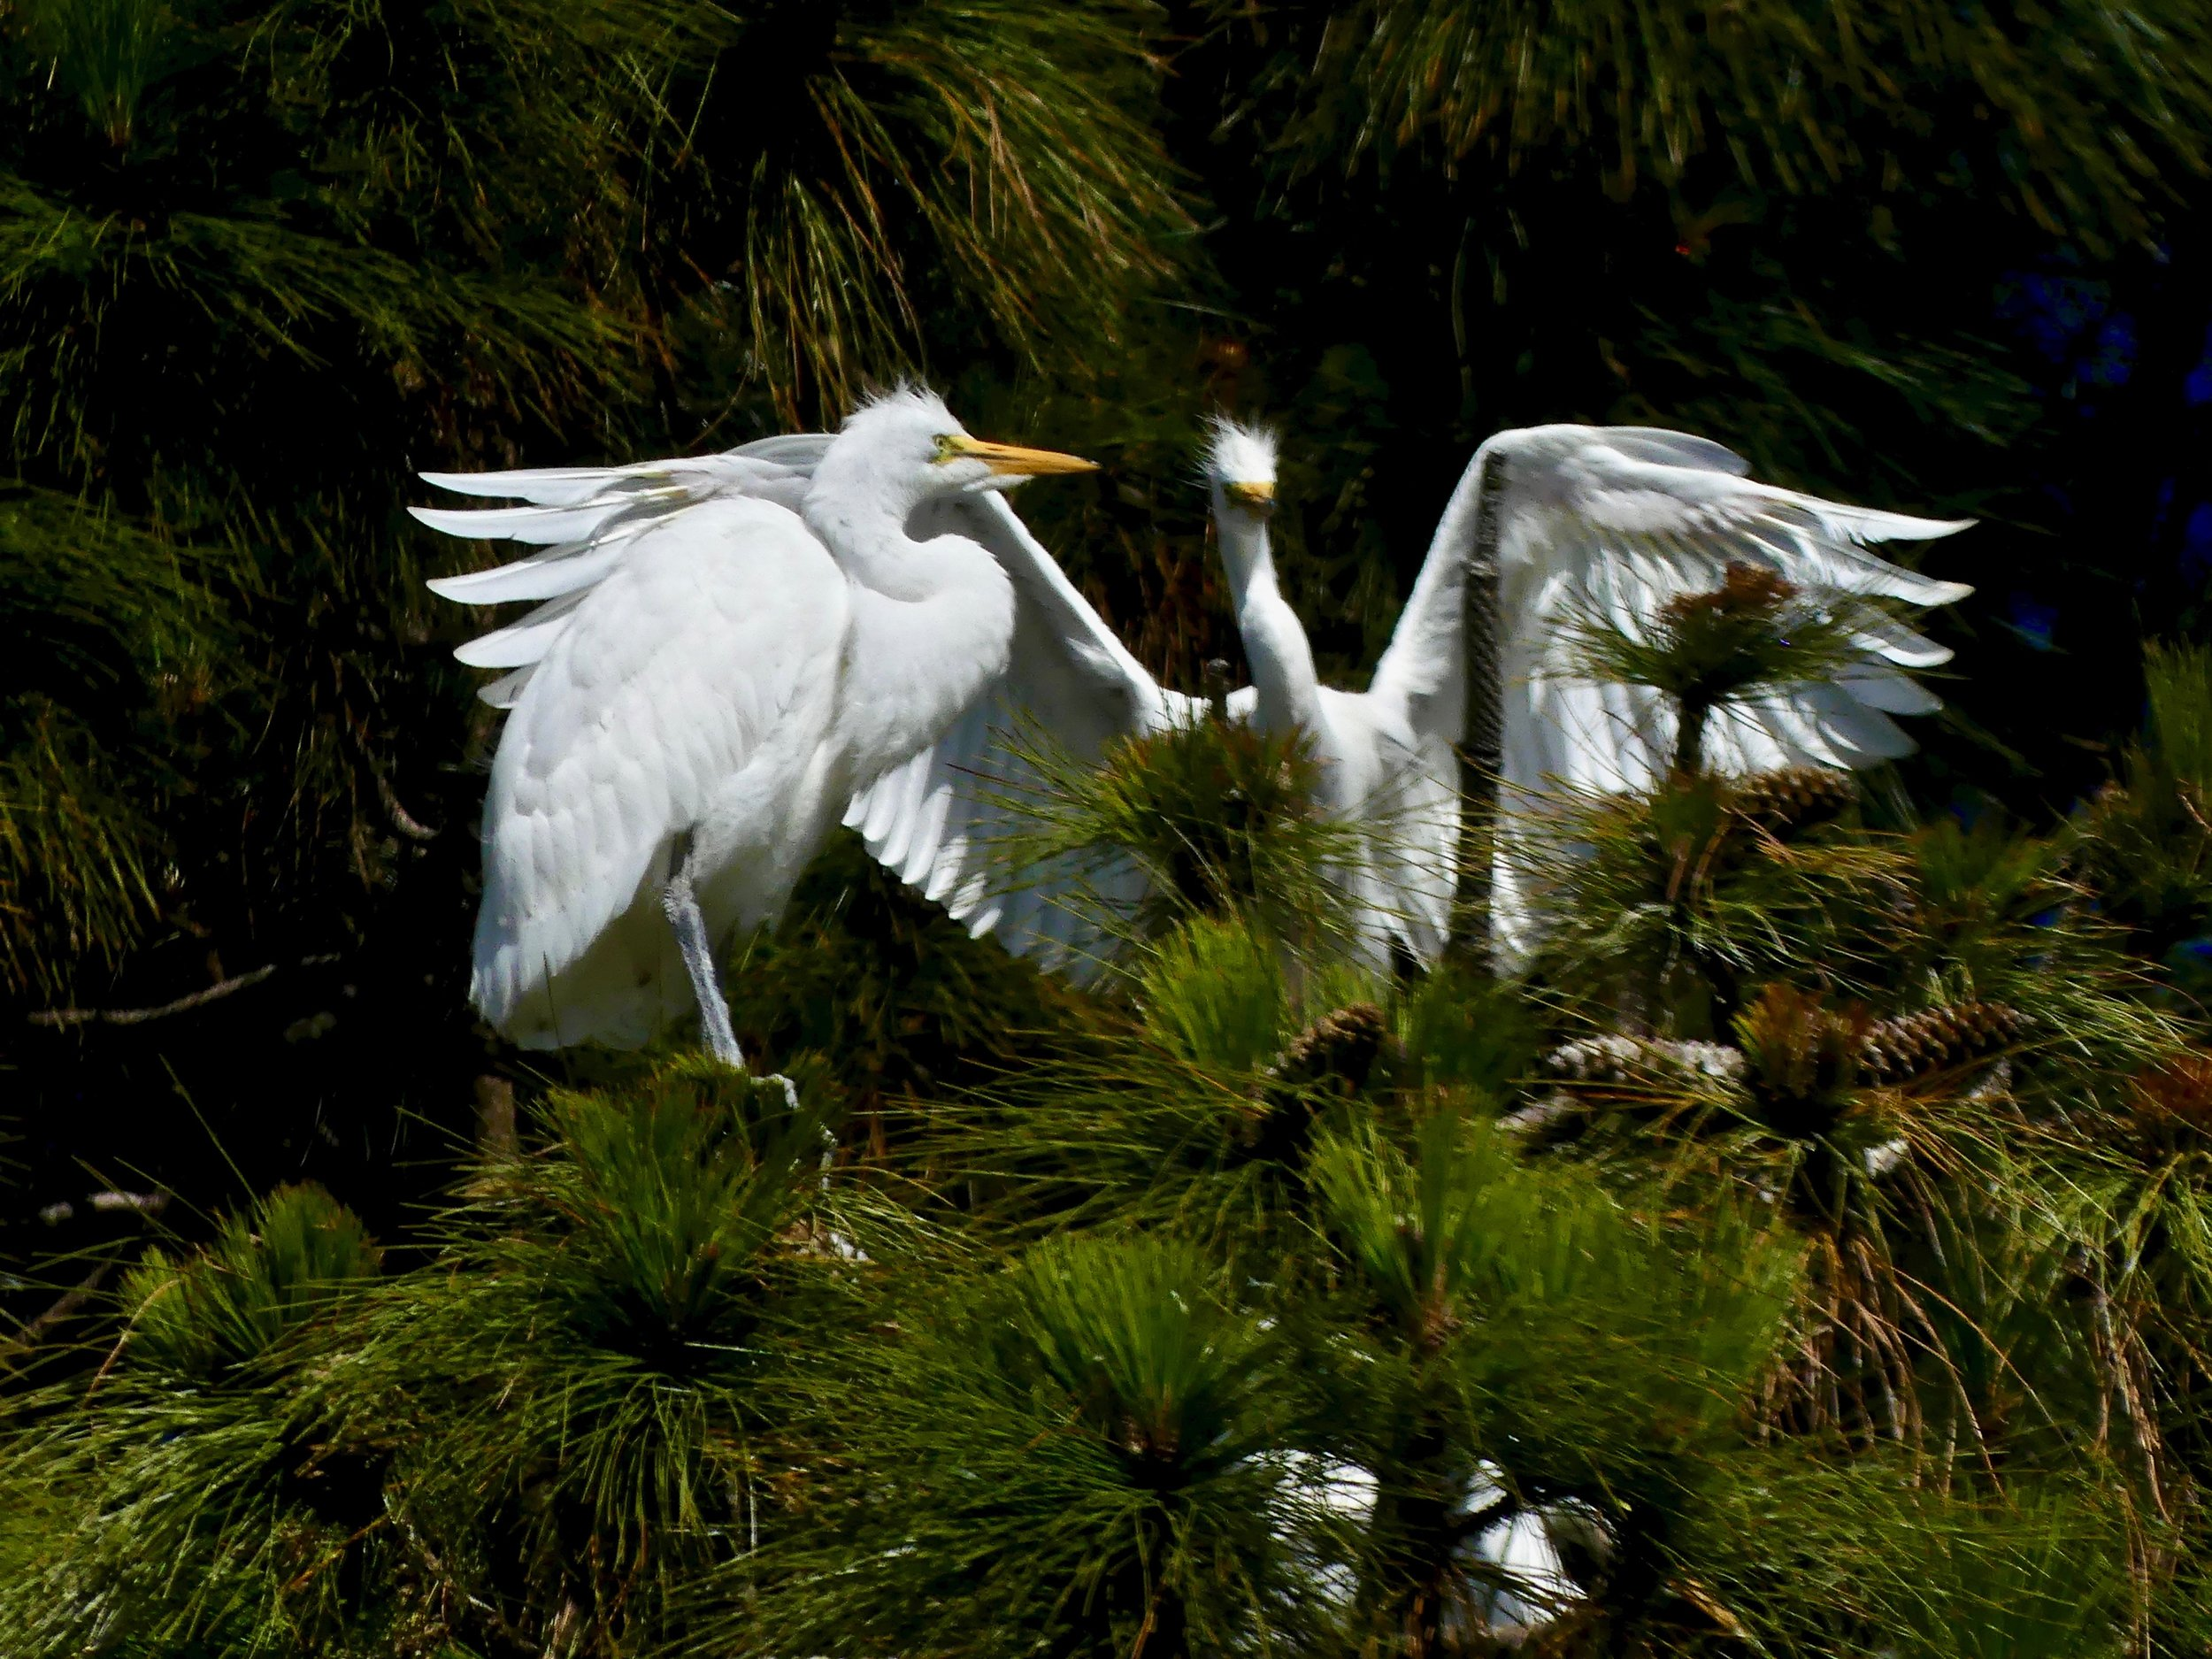 Great Egret watching its fledgling test its wings.